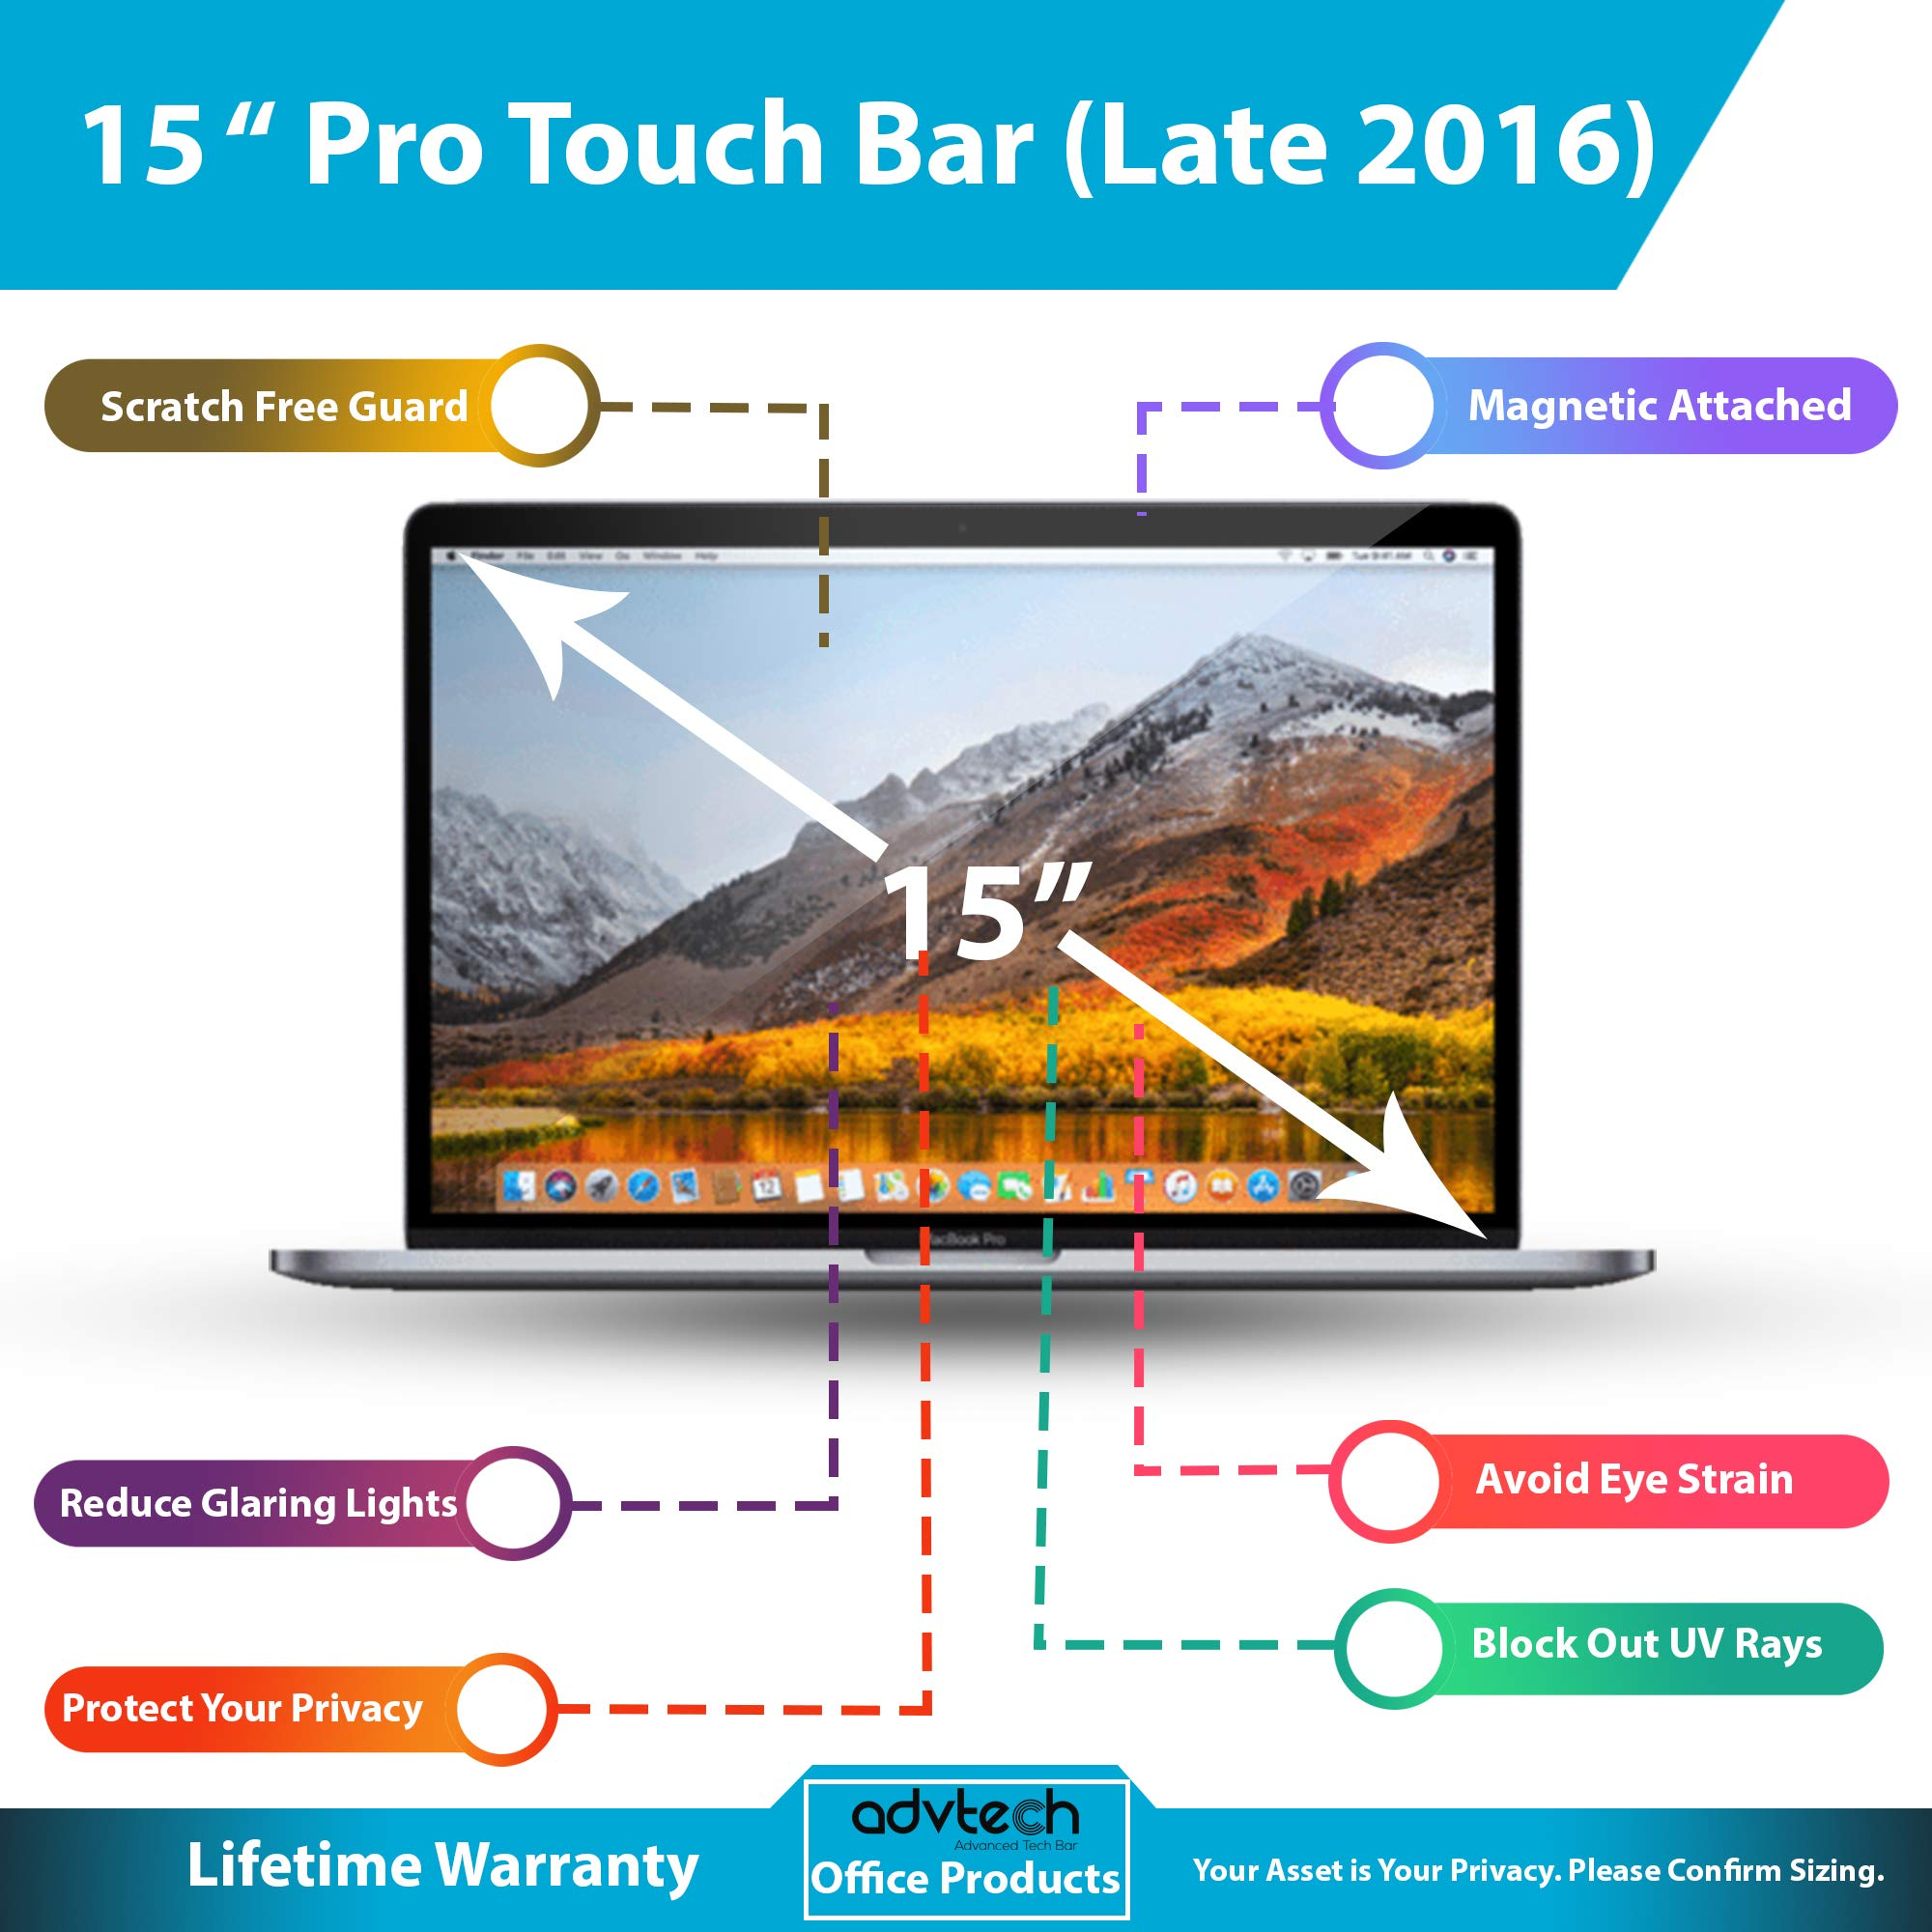 ADVTECH 2nd Gen Magnetic Privacy Screen Filter Compatible for Latest MacBook Pro 15'' Touch Bar (Late 2016) No Stickers Required [Anti-UV Rays] Anti-Glare [Screen Protection] Stop Data Leaks by ADVTECH (Image #2)